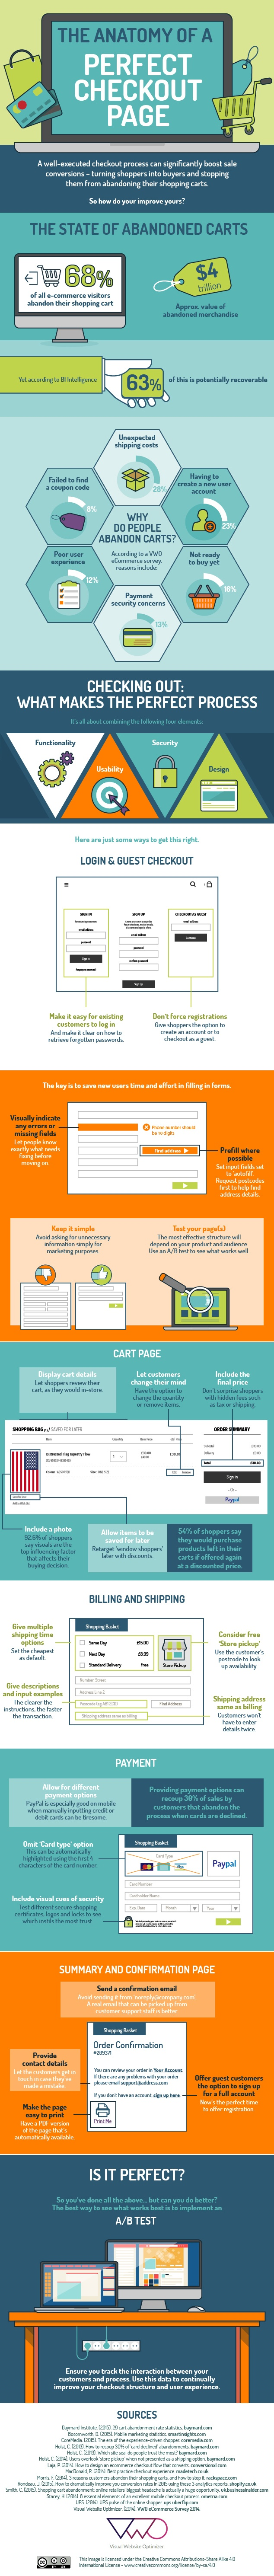 The-anatomy-of-a-perfect-checkout-page-infographic